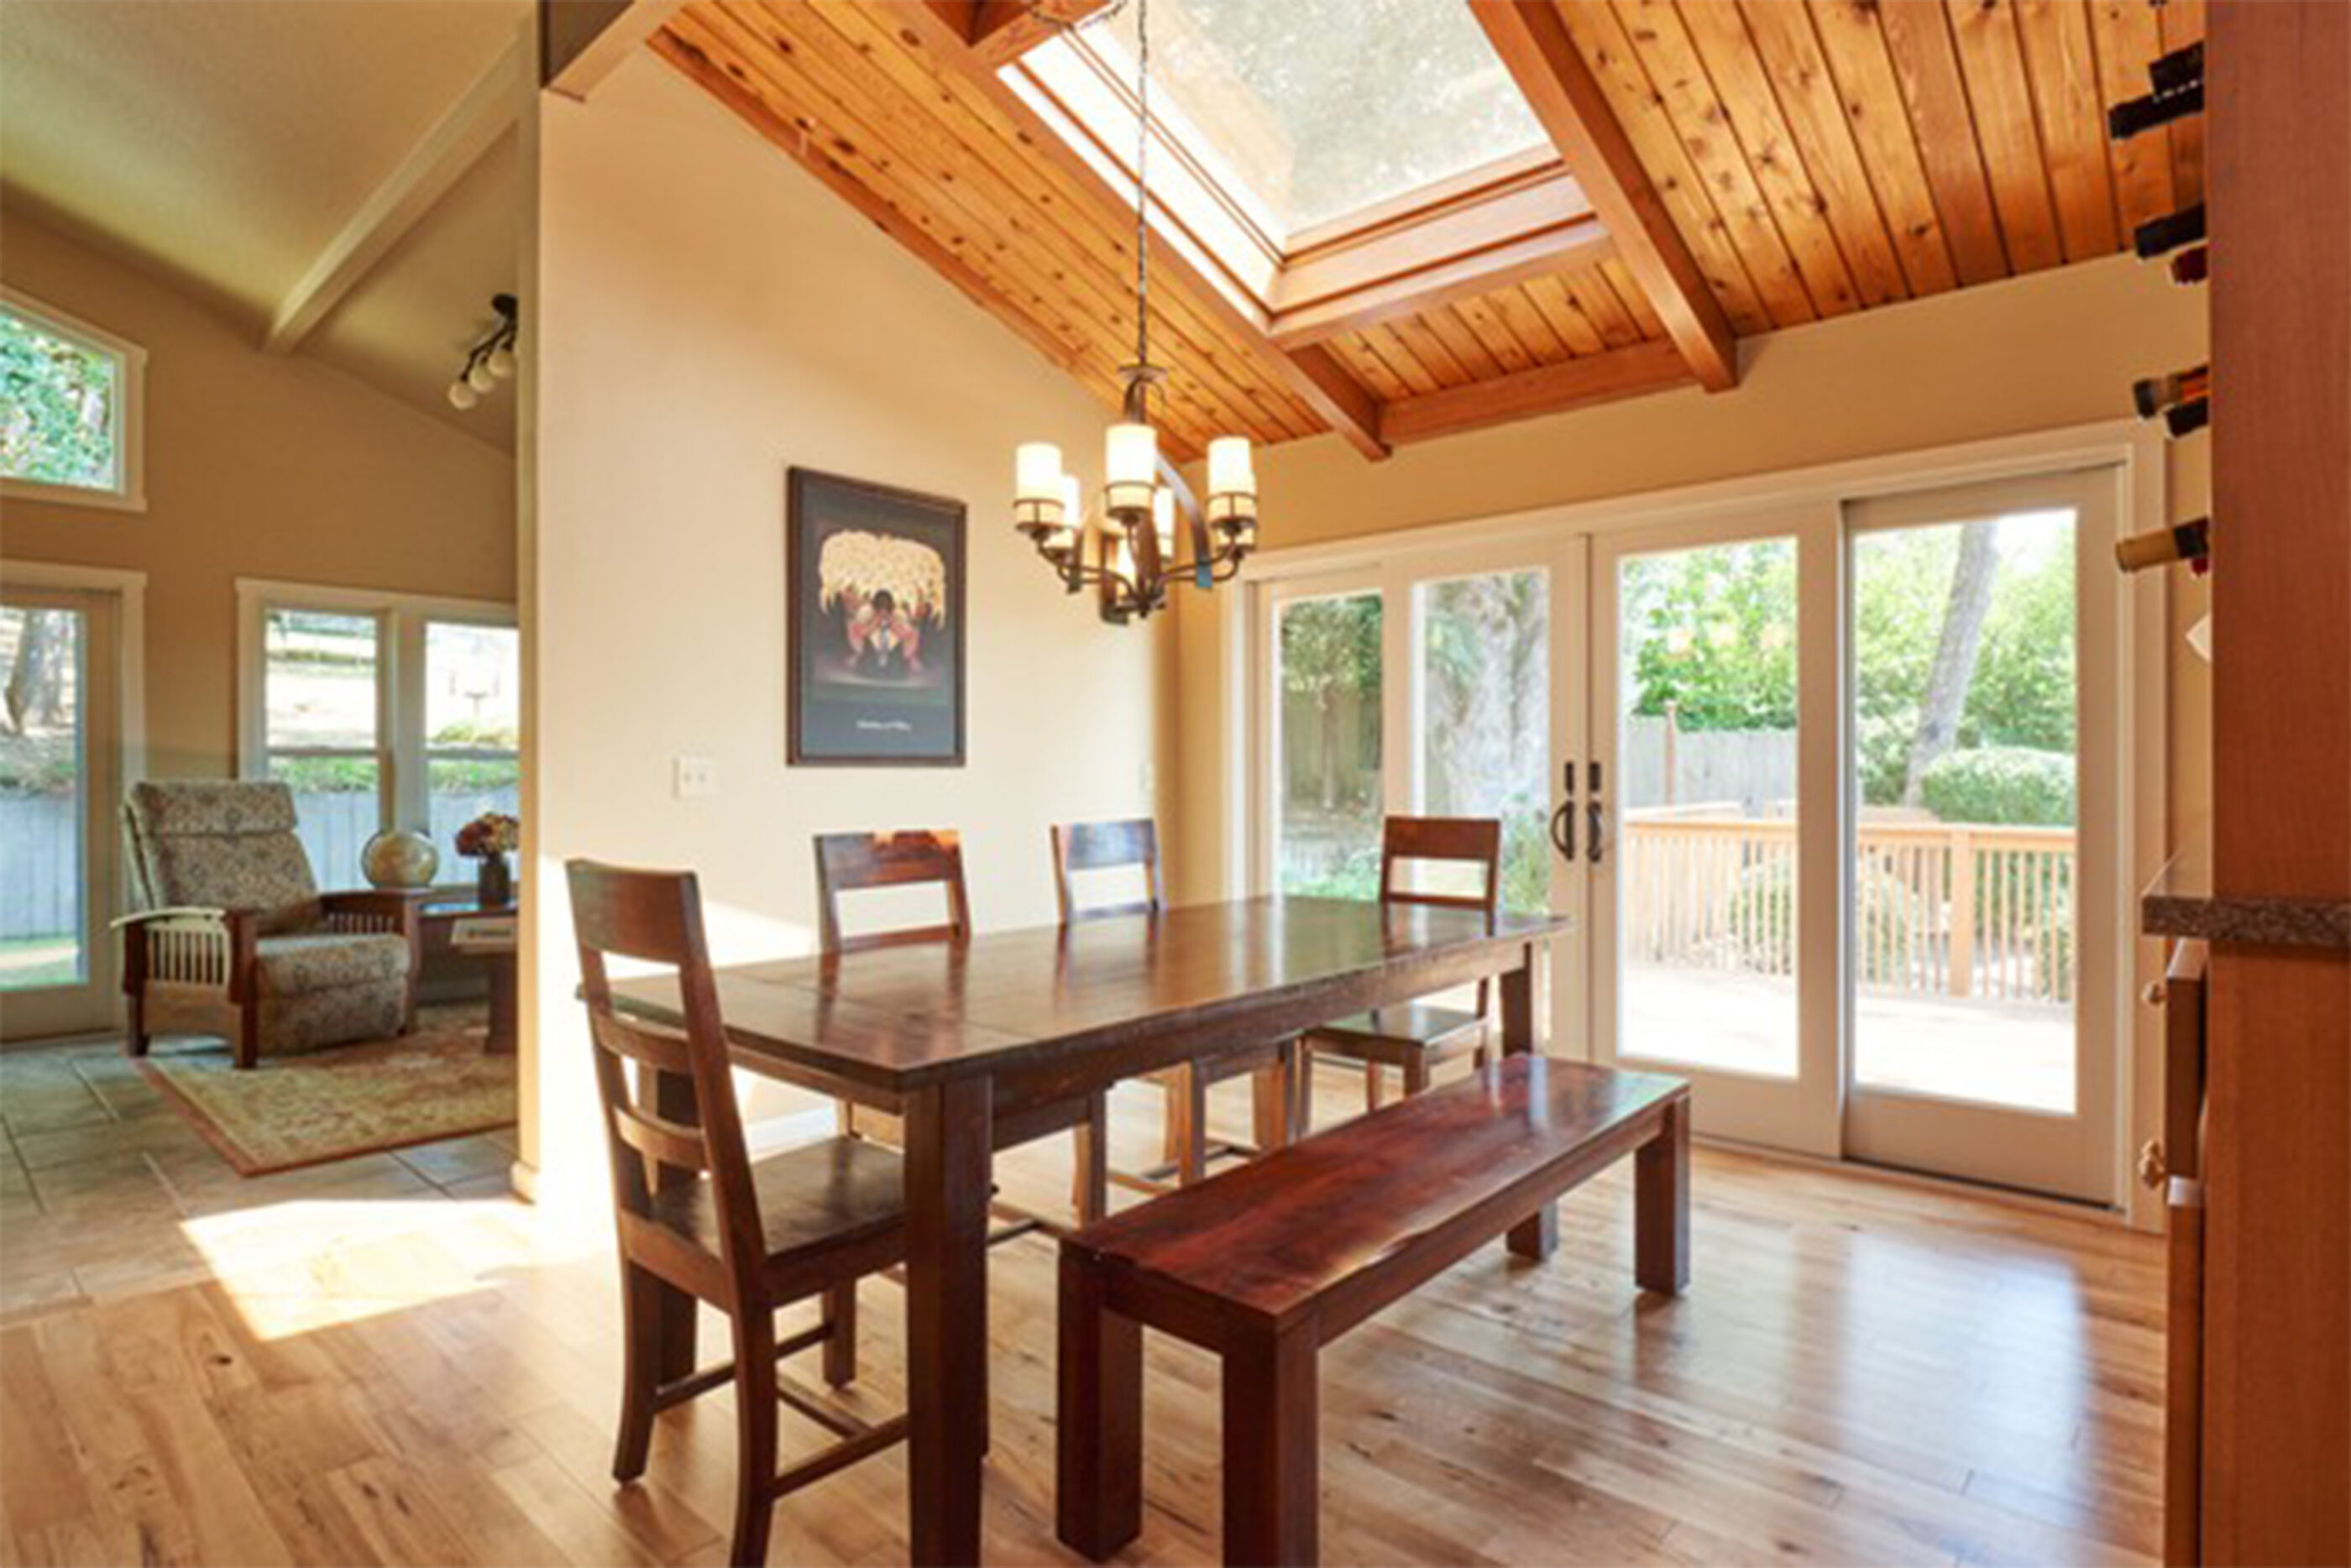 Natural Maple Country Hardwood flooring looks beautiful with the rich wood of the ceilings.